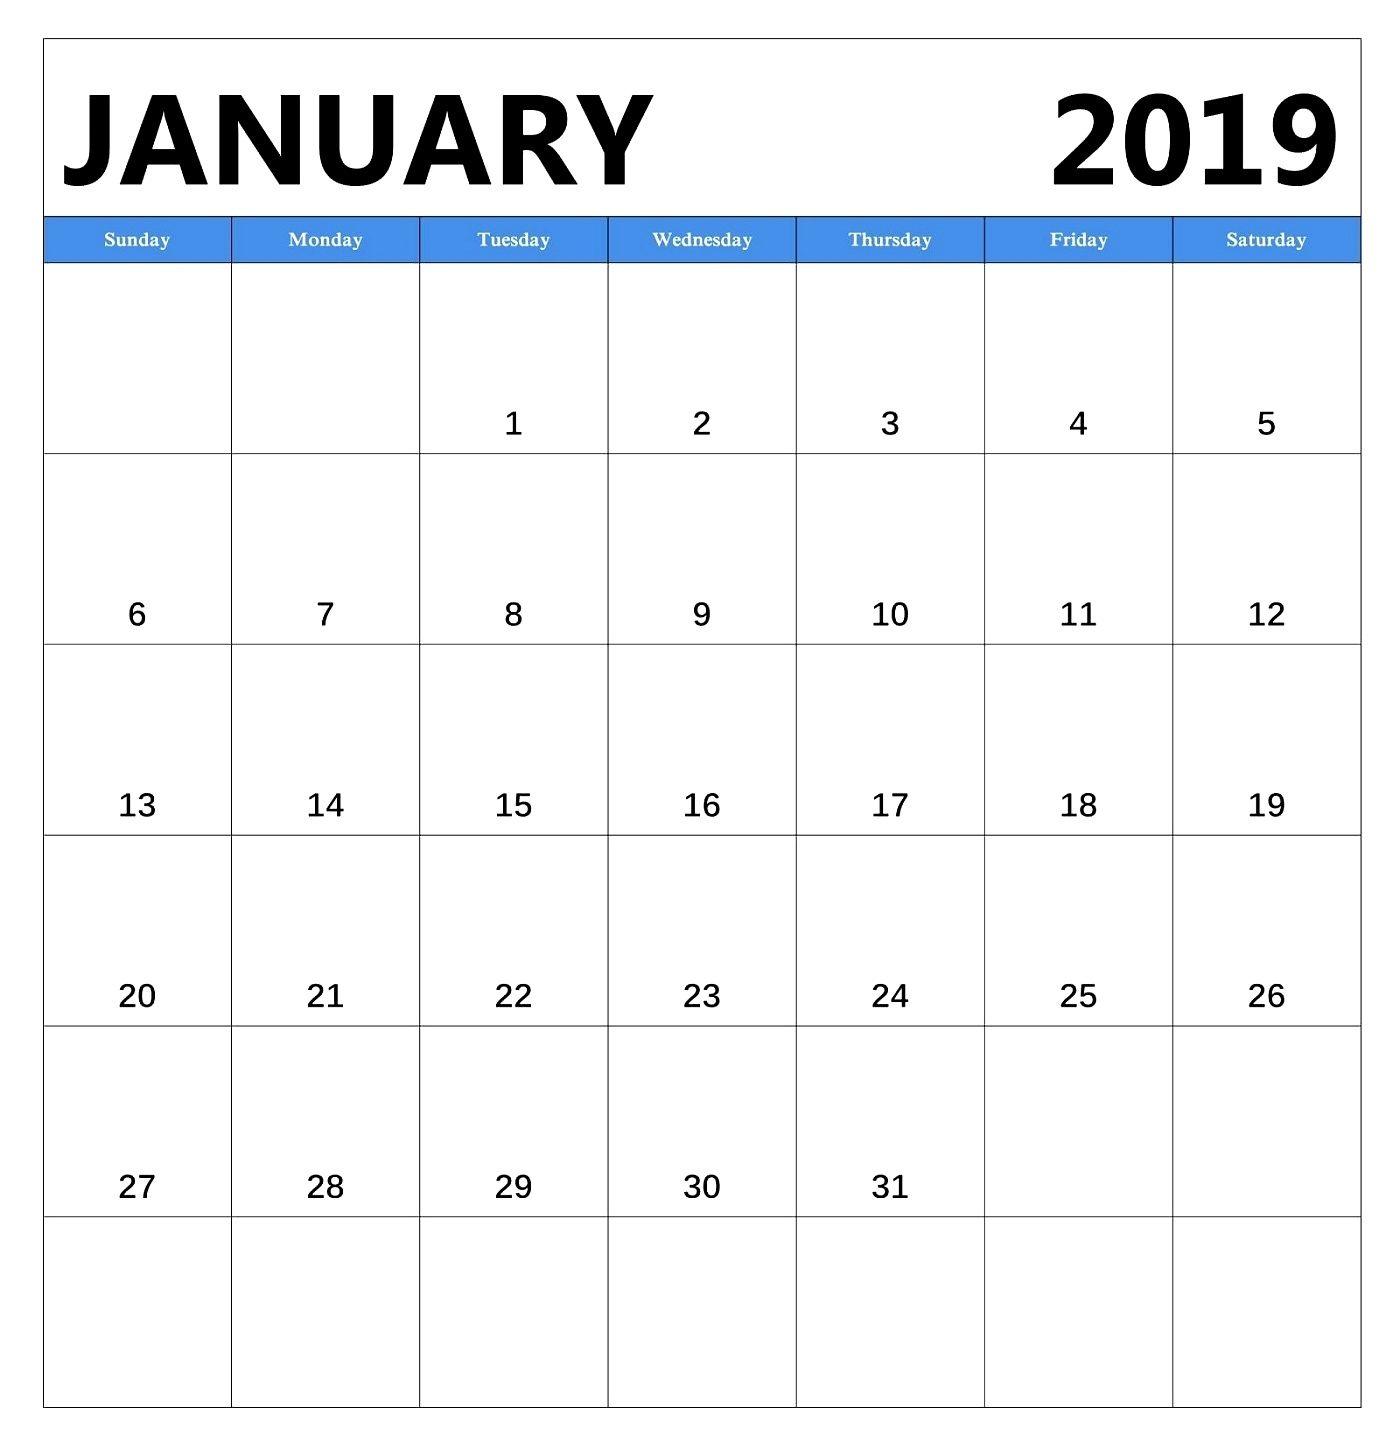 january 2019 free download calendar pdf excel word::January 2019 Calendar Word